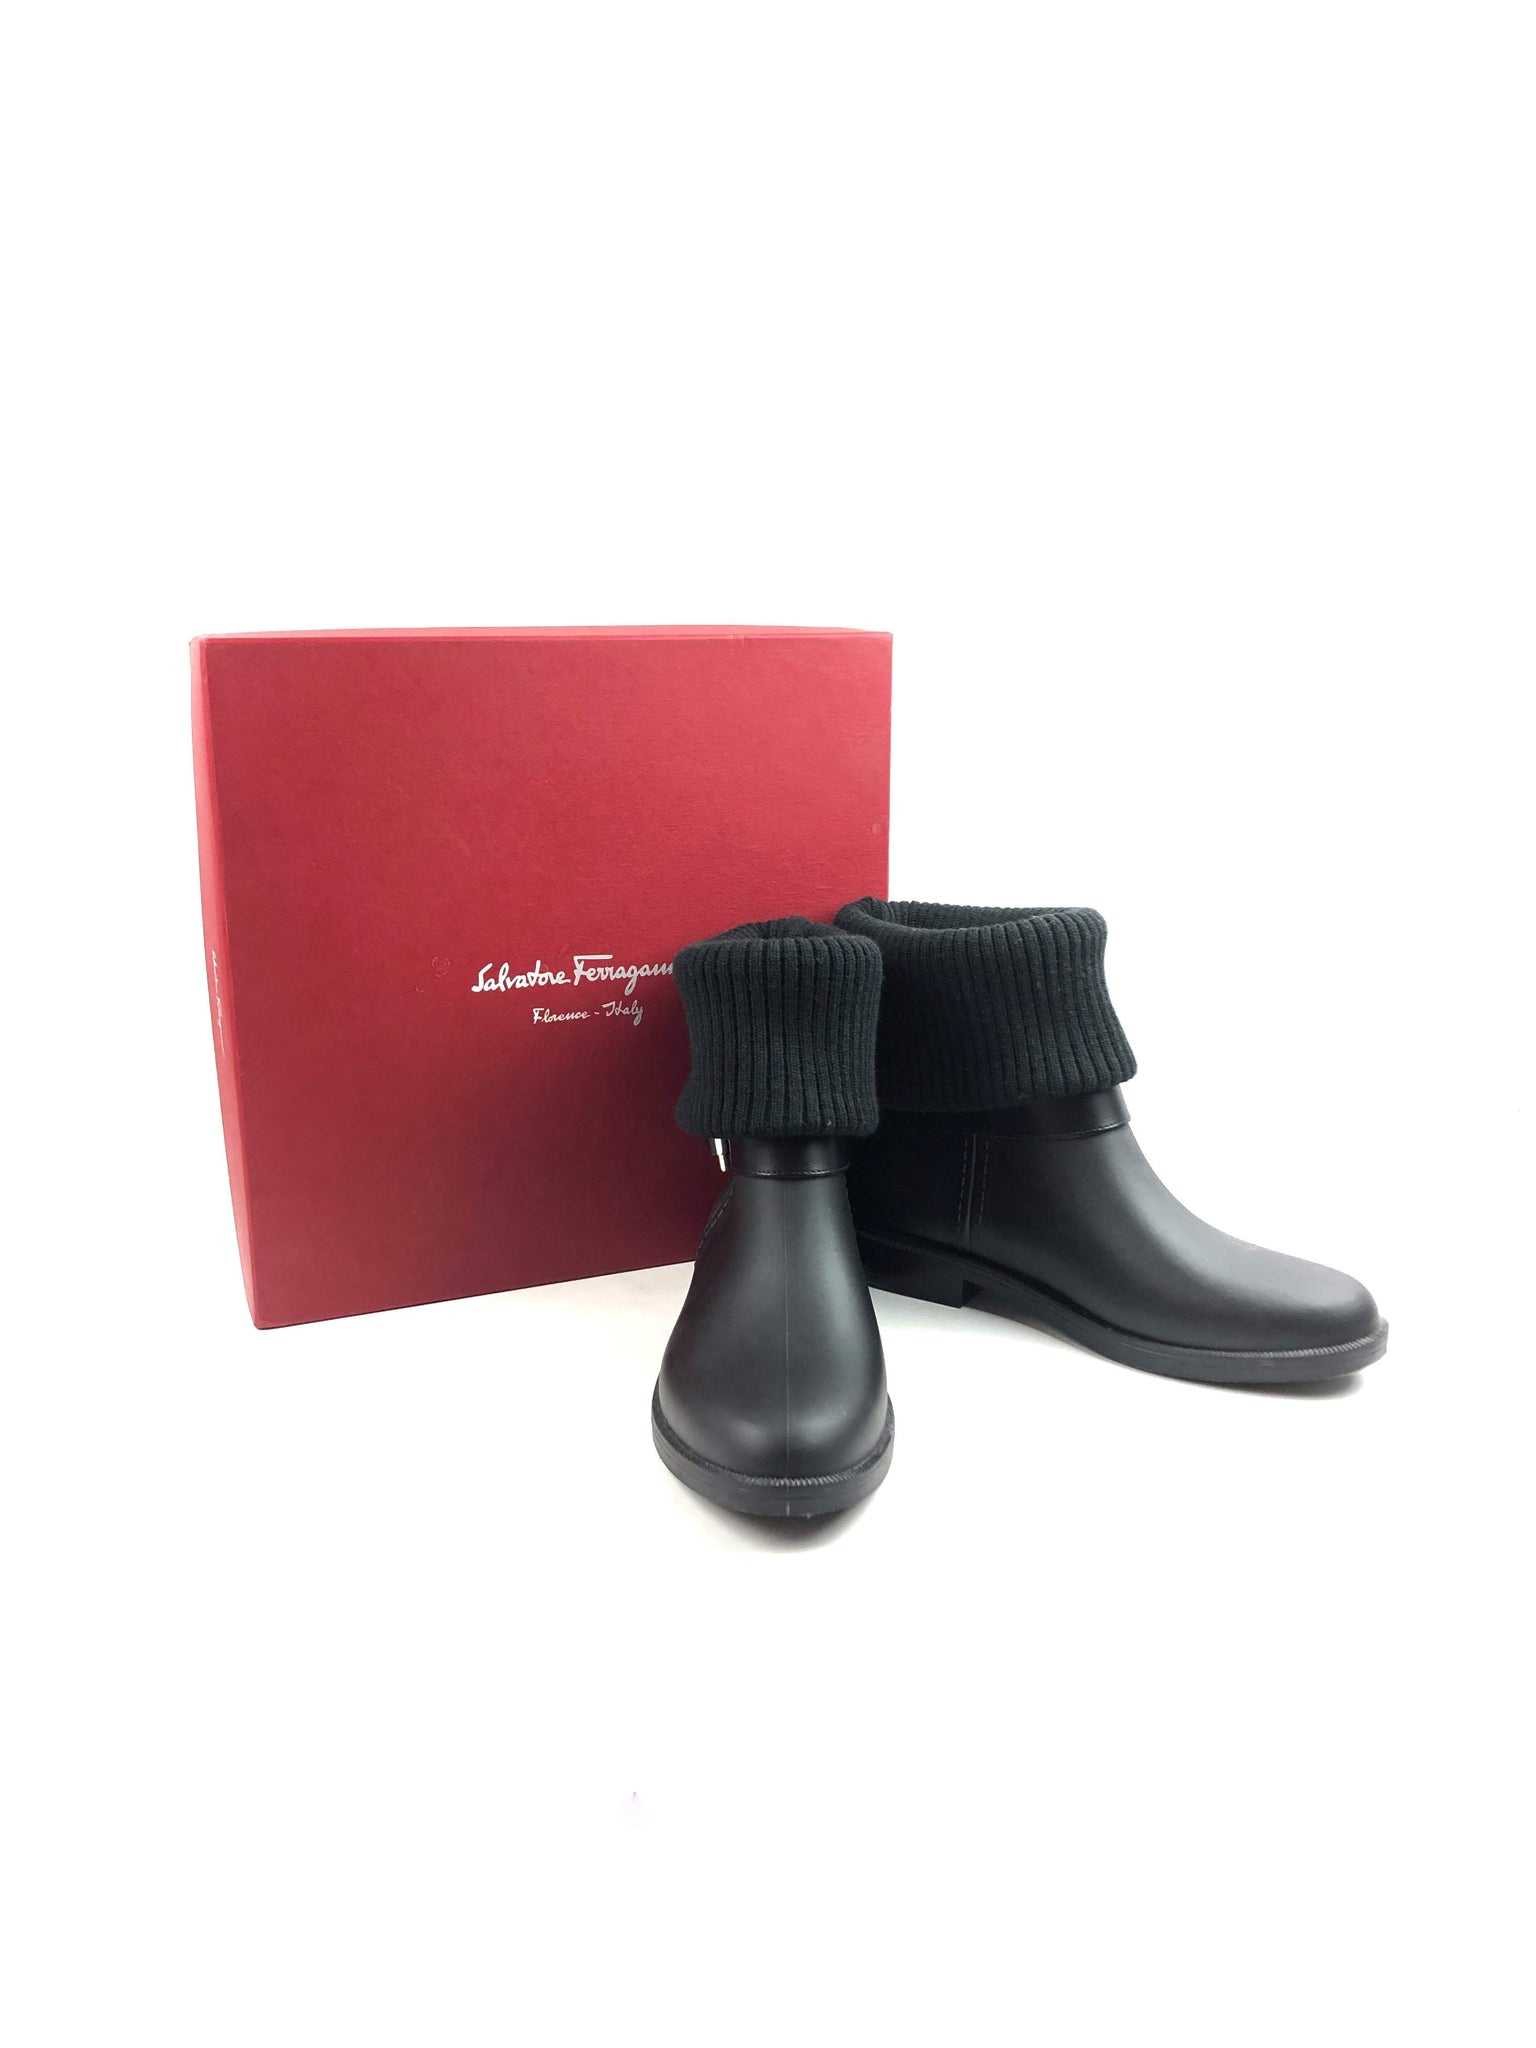 SALVATORE FERRAGAMO Black Rubber Boots w/Knit Accent